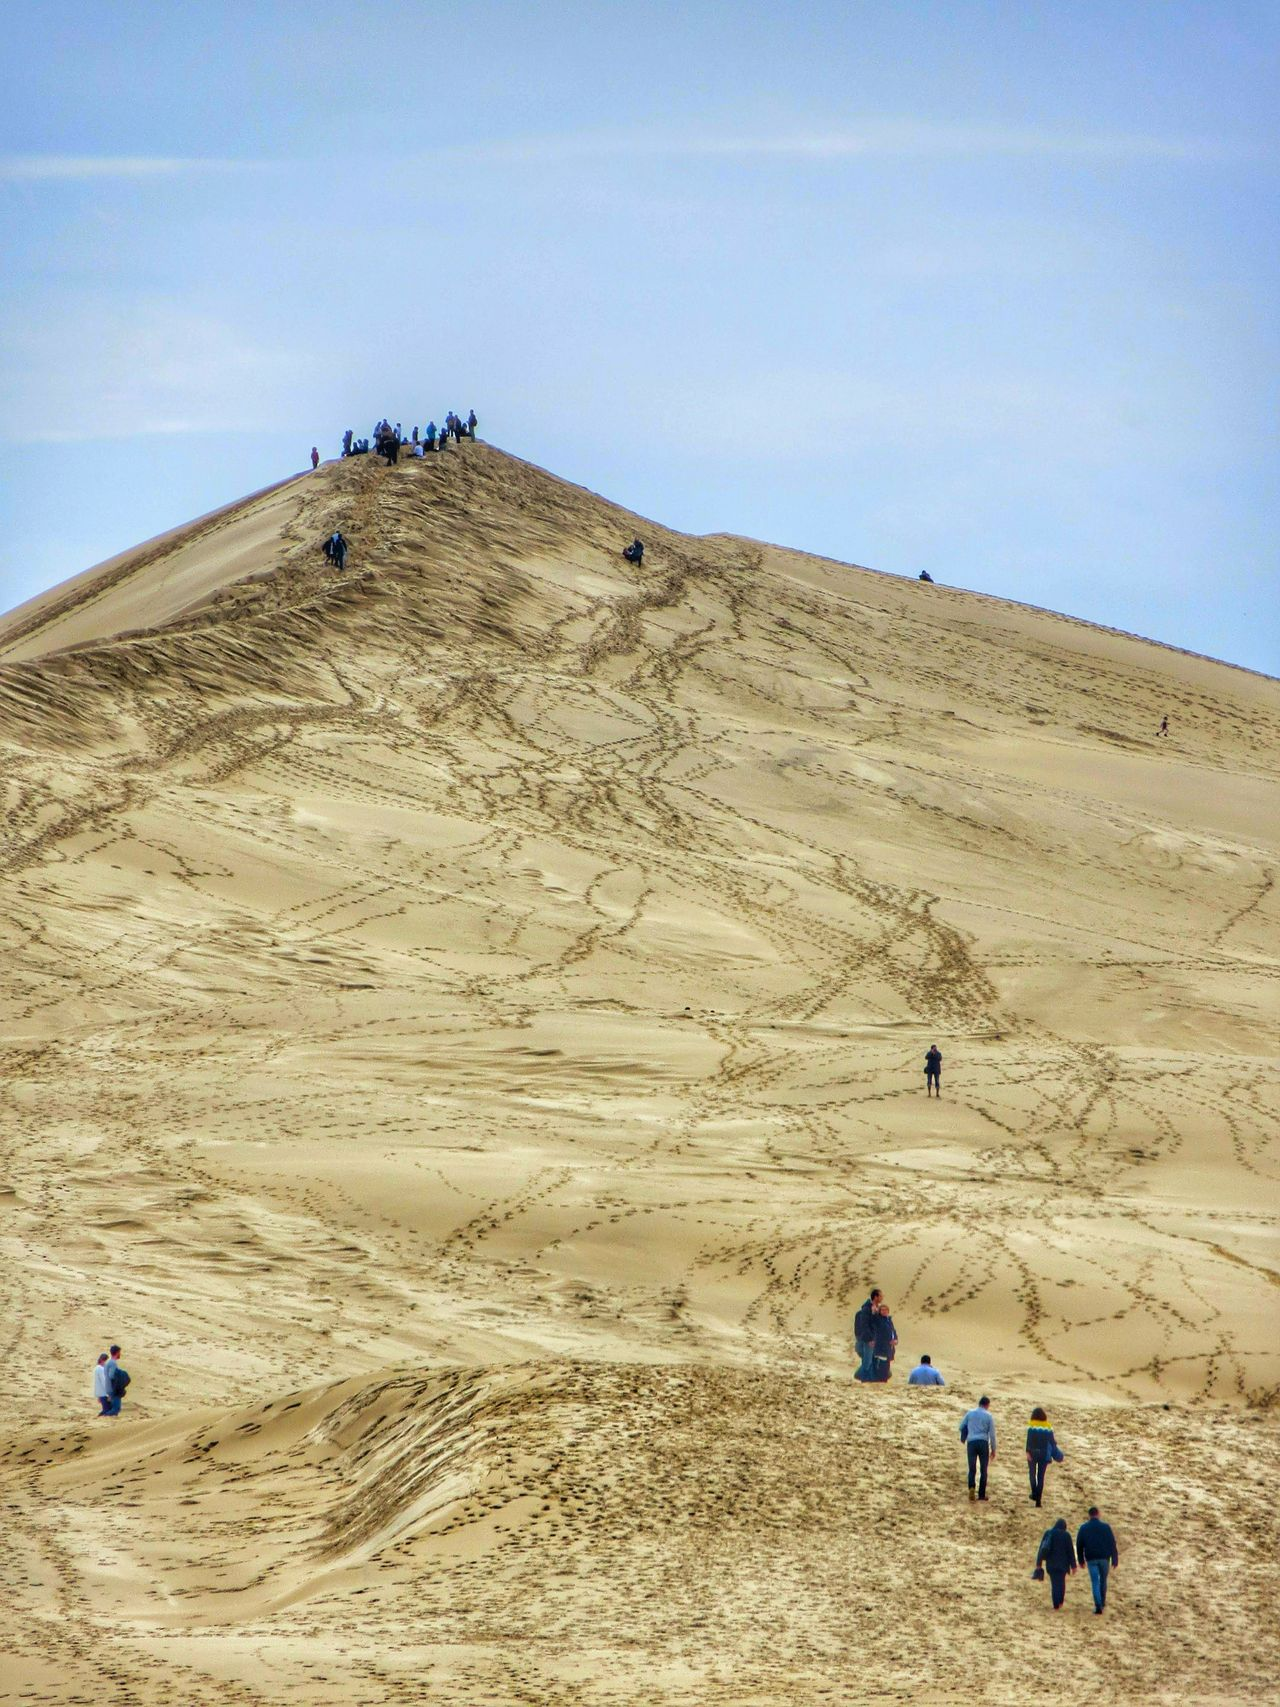 Sand Real People Beach Large Group Of People Lifestyles Sky Outdoors Leisure Activity Vacations Nature Day Landscape Men Beauty In Nature Sand Dune People Hiking Dune Vacations EyeEm Best Shots EyeEm Gallery Travel Destinations Dune Du Pyla Desert Landscape Beauty In Nature